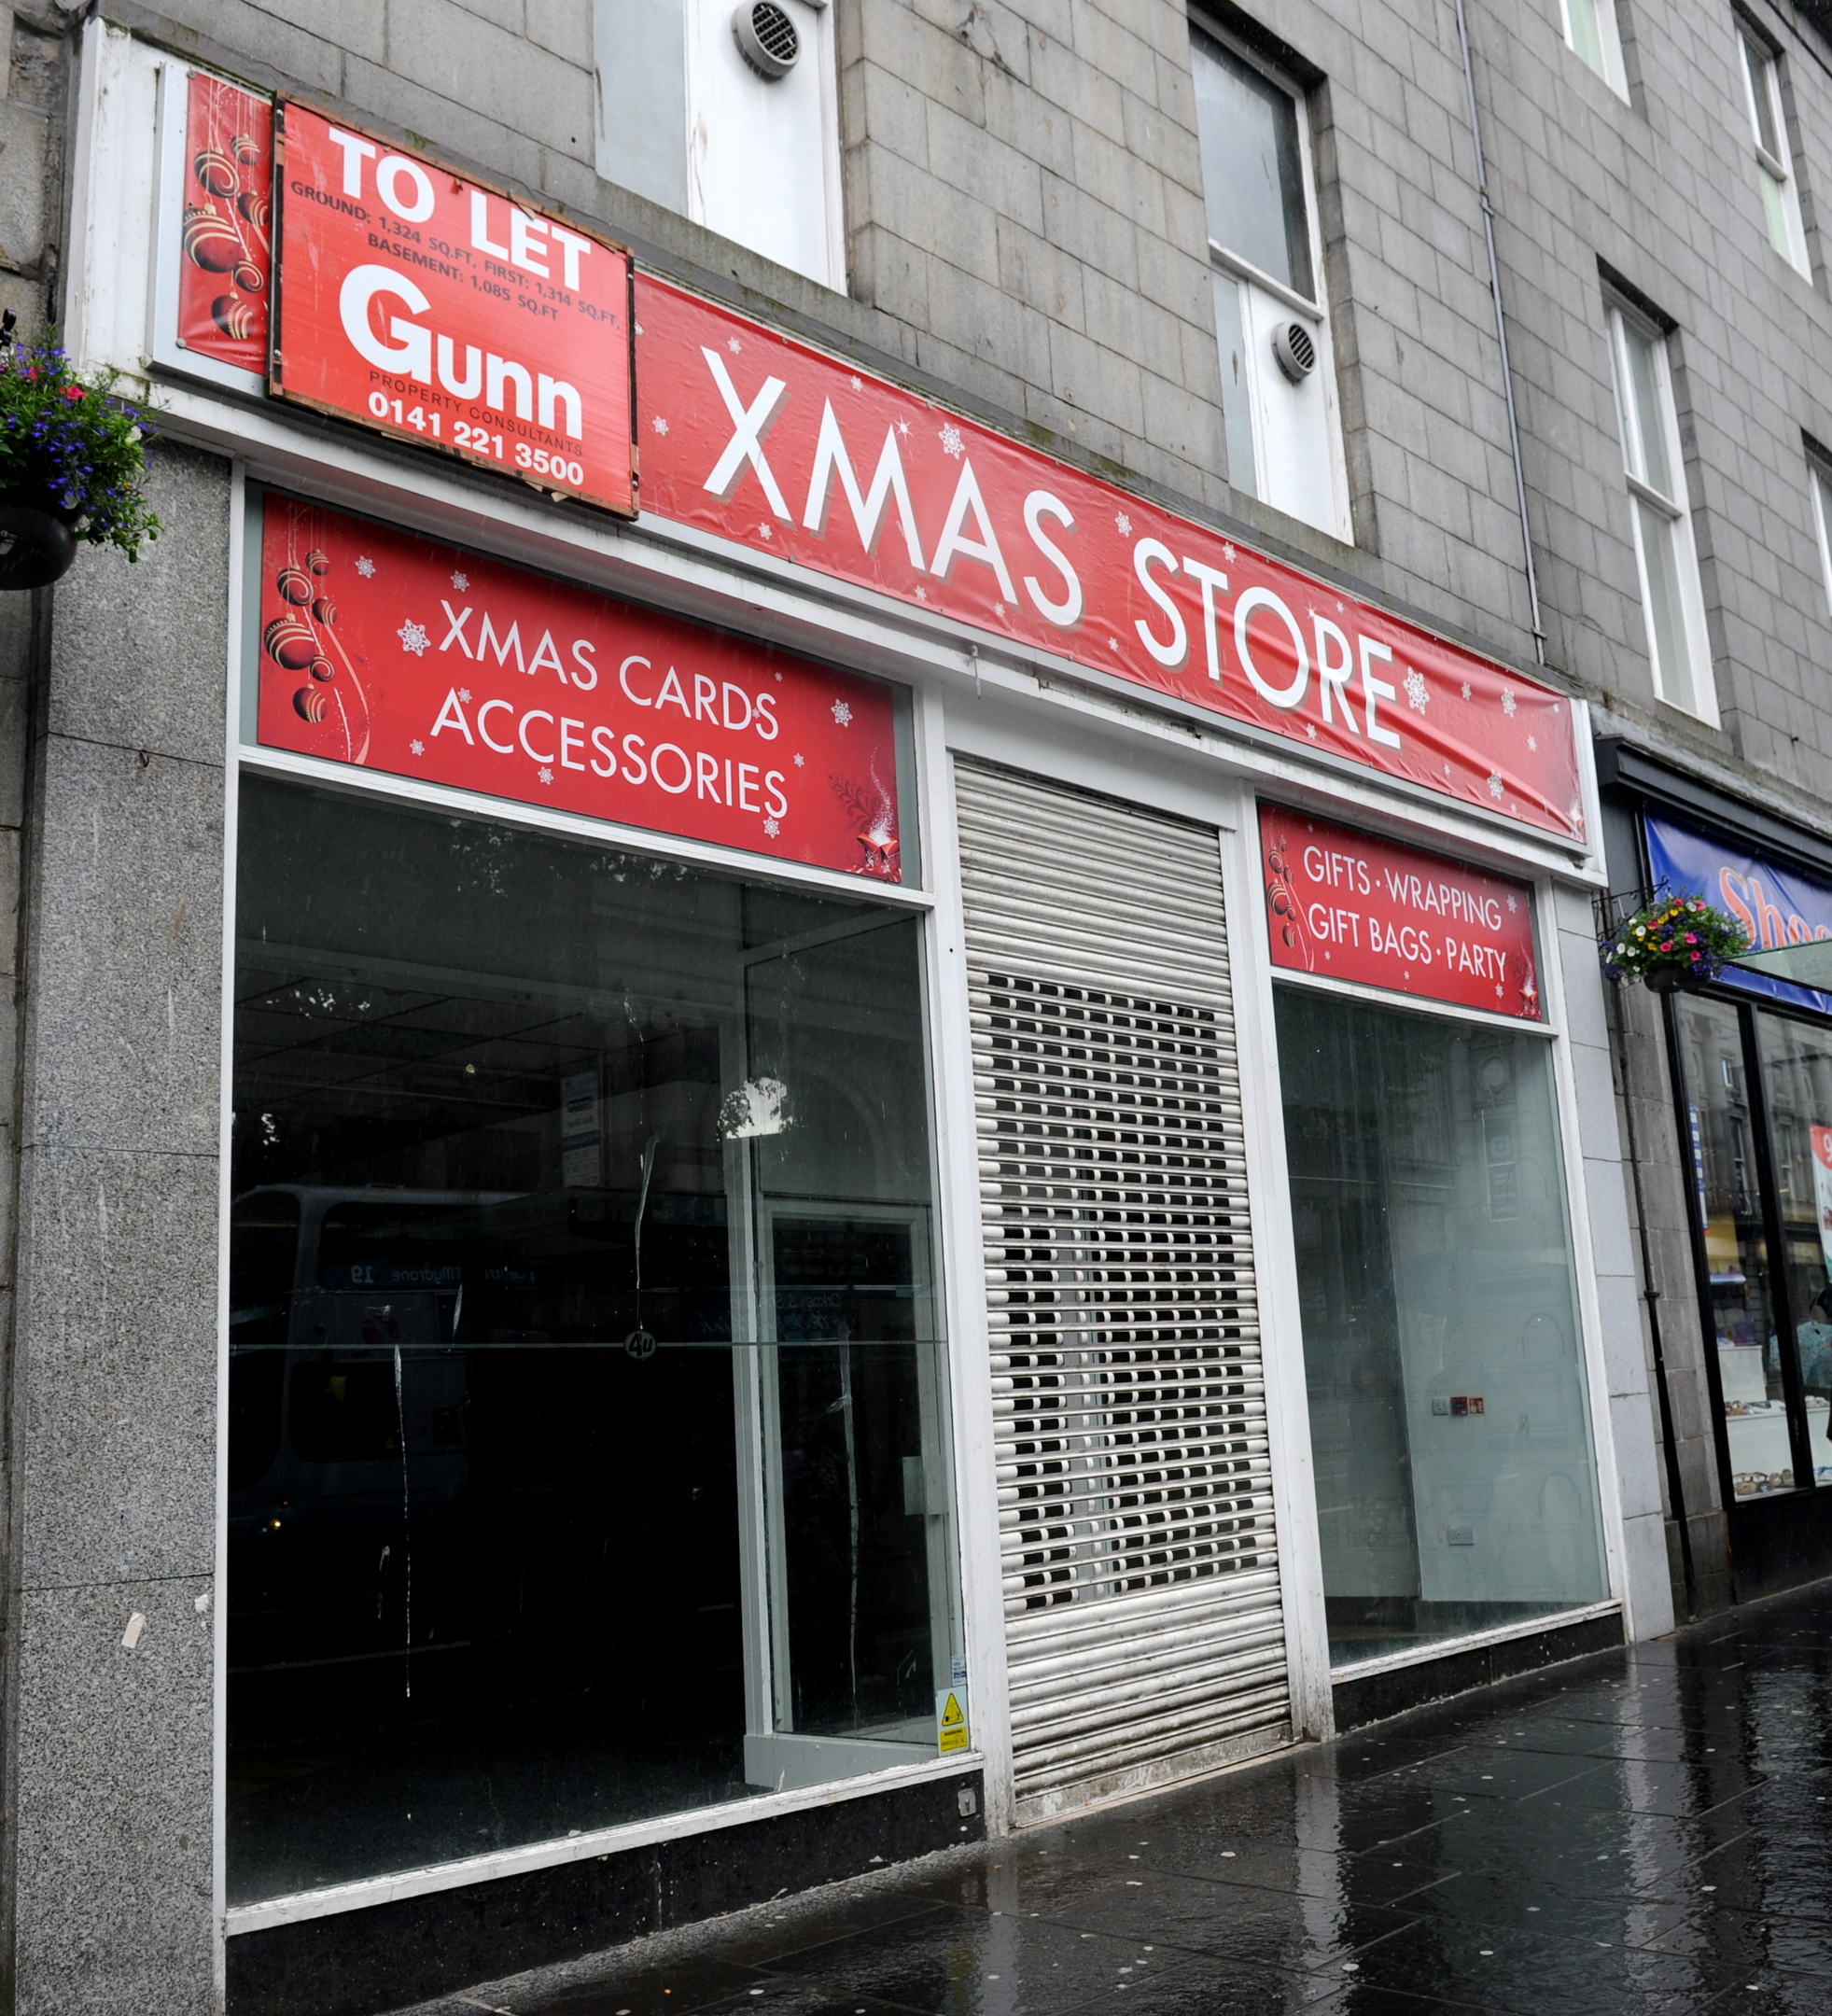 New outlet:  The unit housing the Xmas Store will be taken on by a major sportswear retailer.